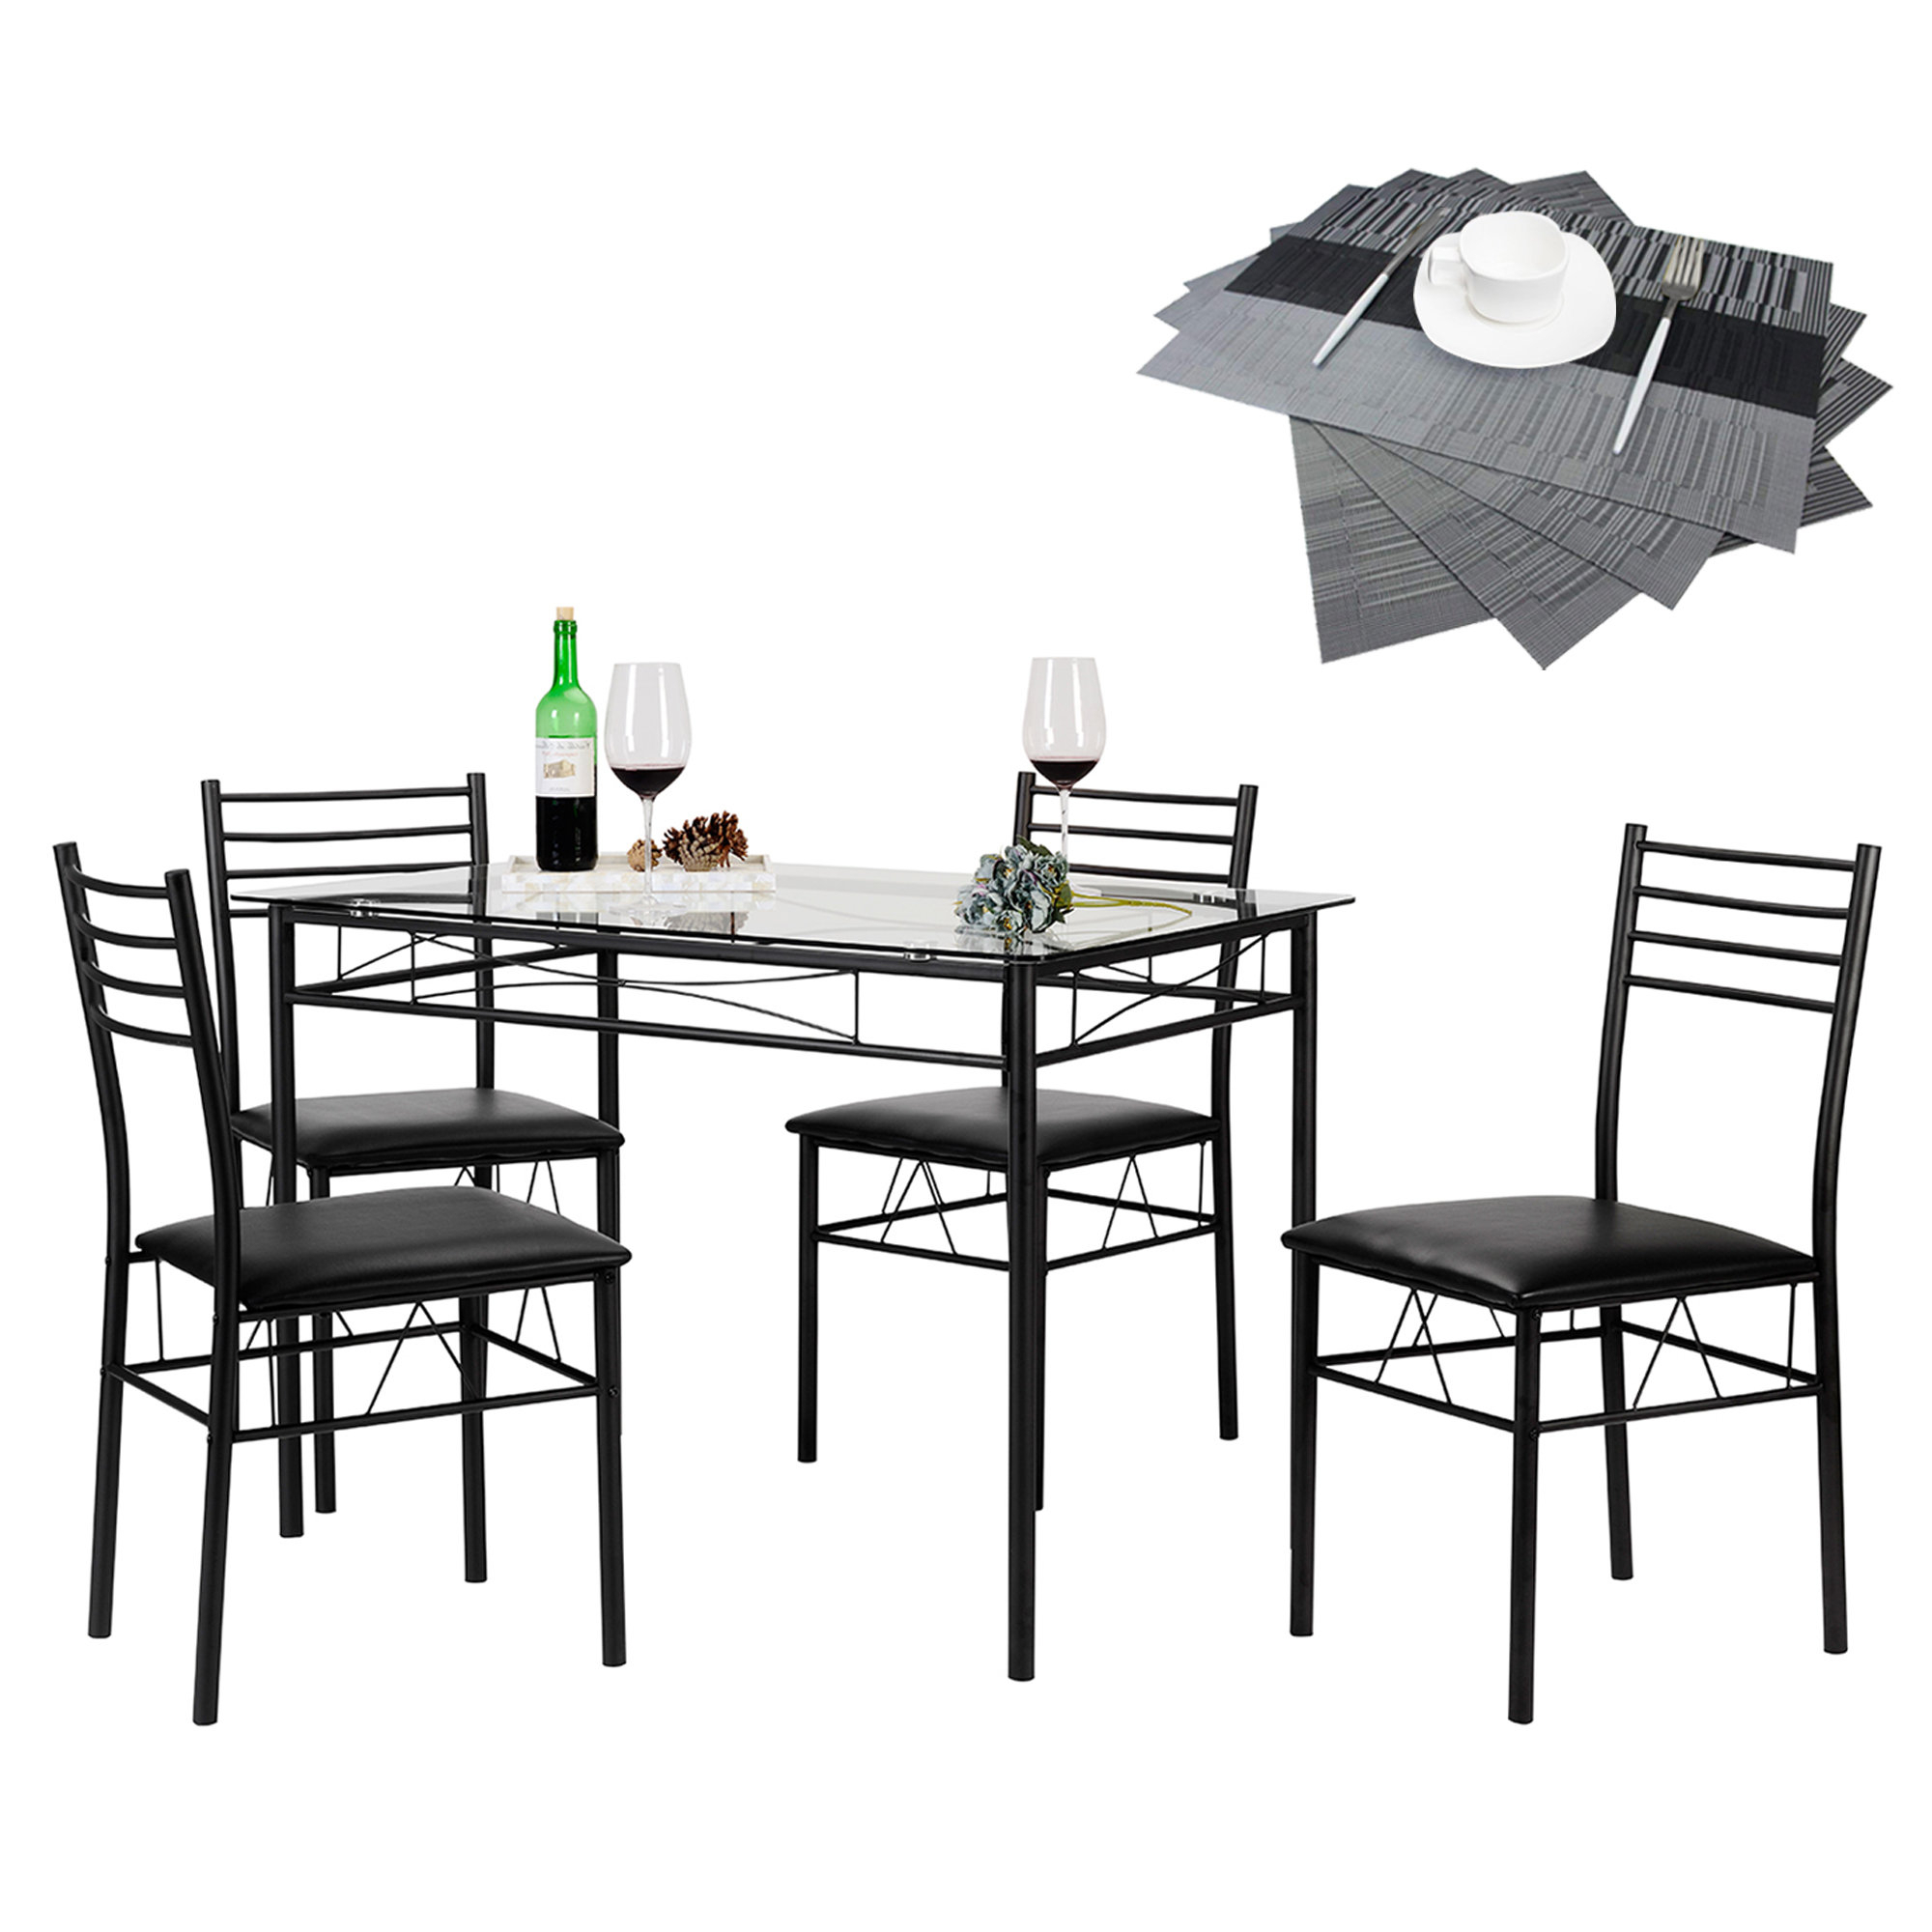 North Reading 5 Piece Dining Table Set Intended For Well Known North Reading 5 Piece Dining Table Sets (Gallery 2 of 20)